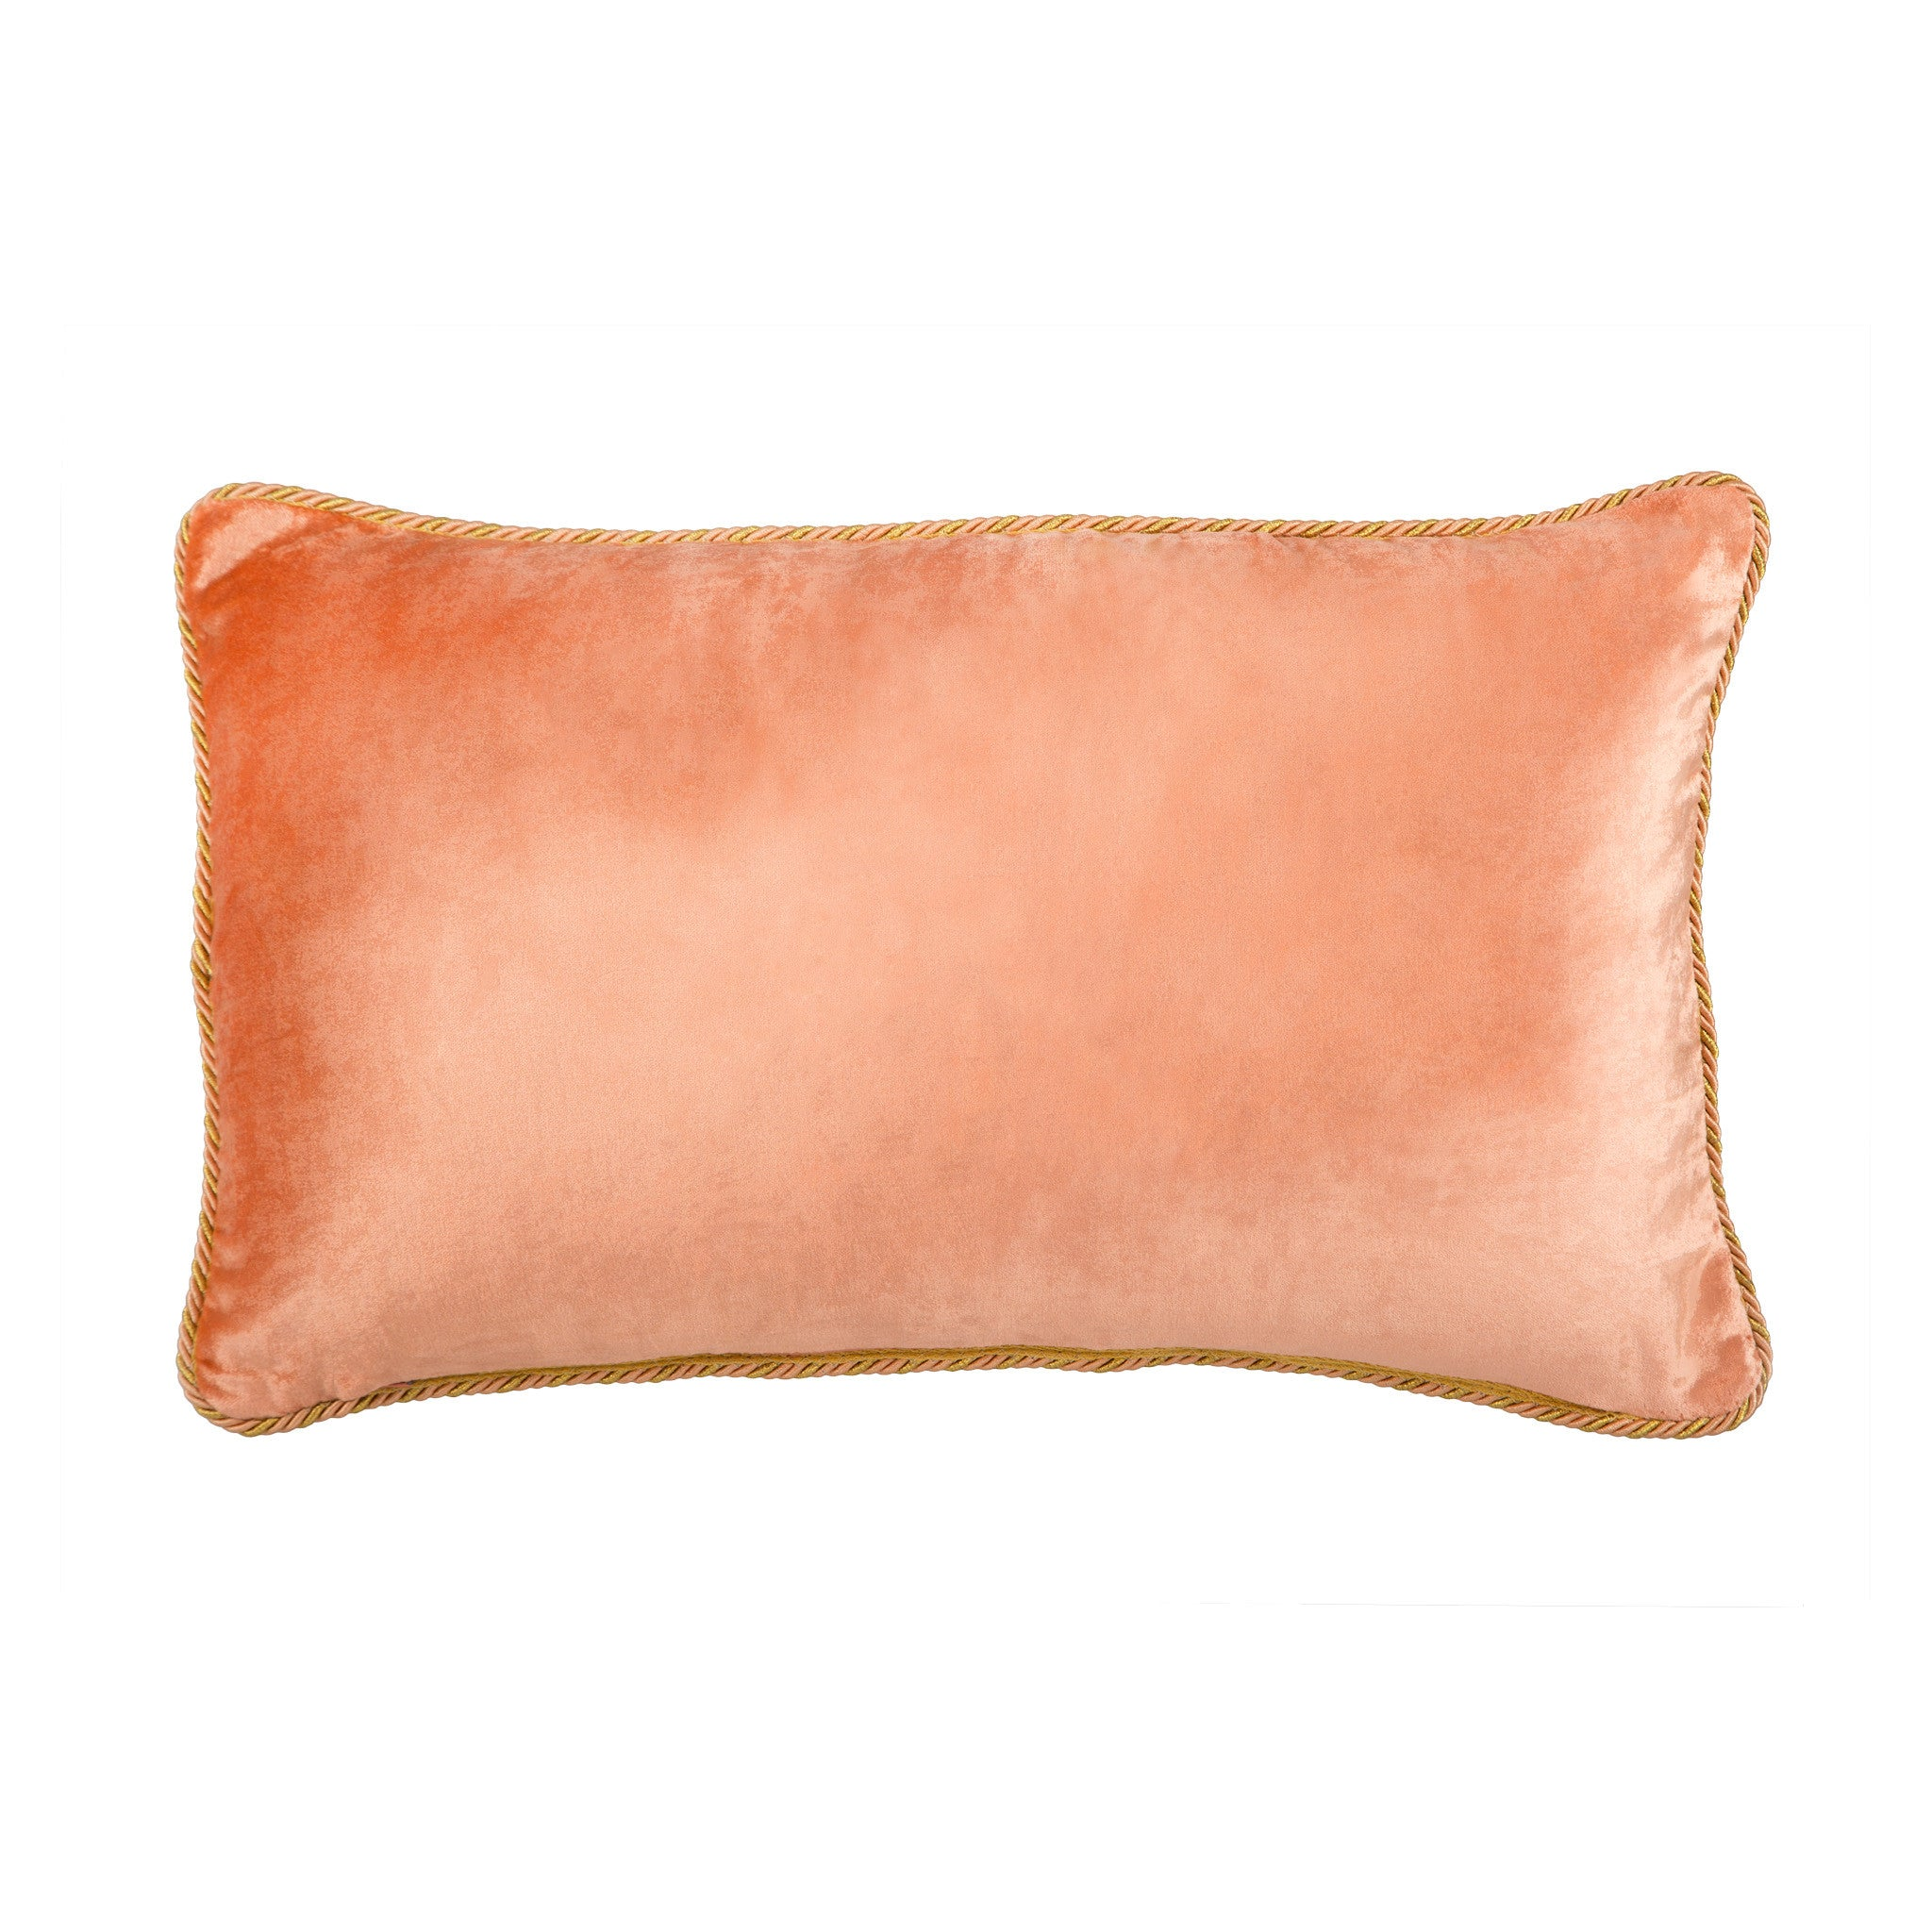 Peach Velvet Cushion - Bivain - 3